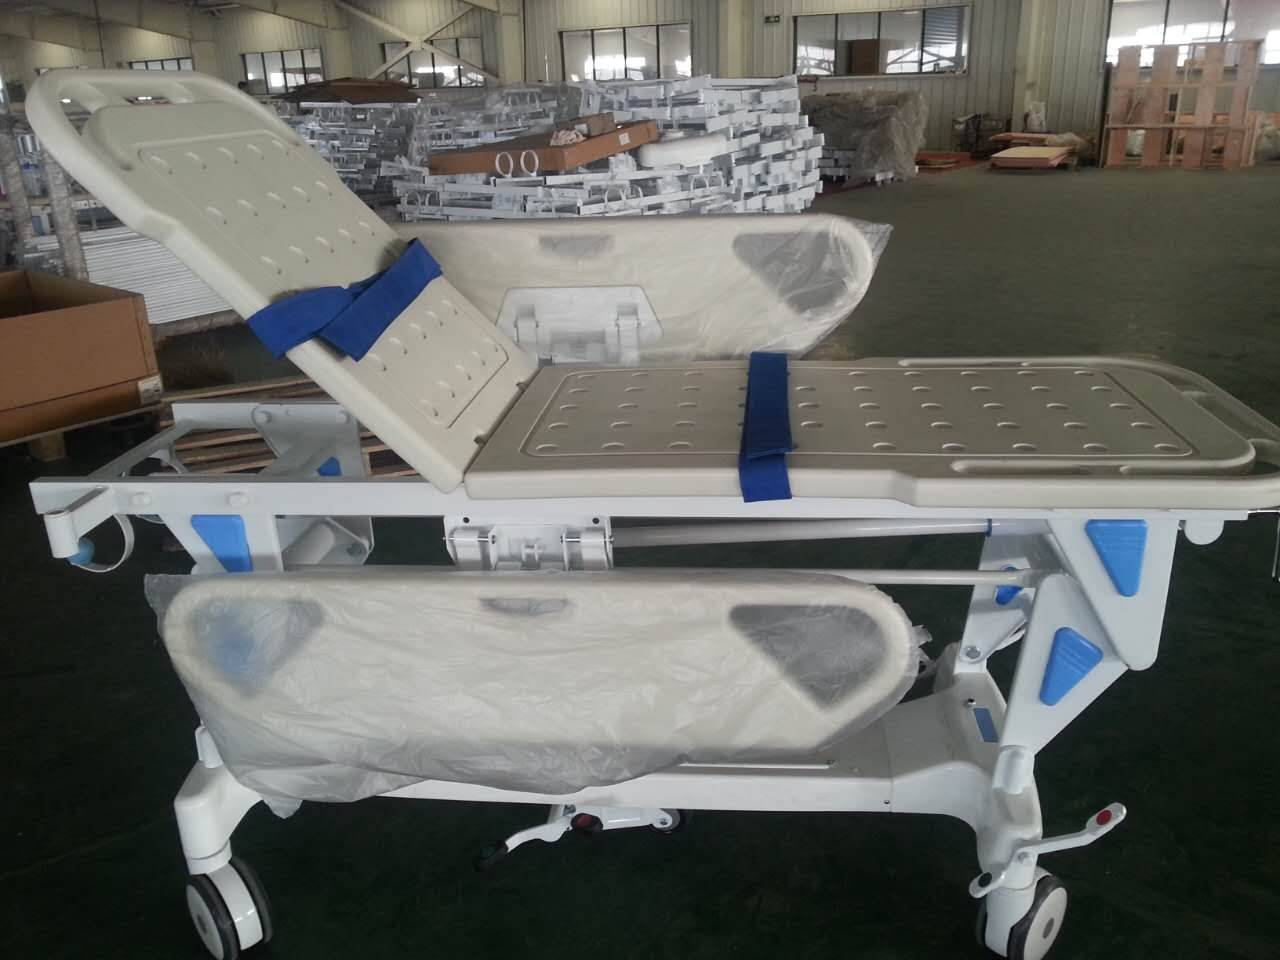 Manual Hospital Patient Transport Stretcher With Casters